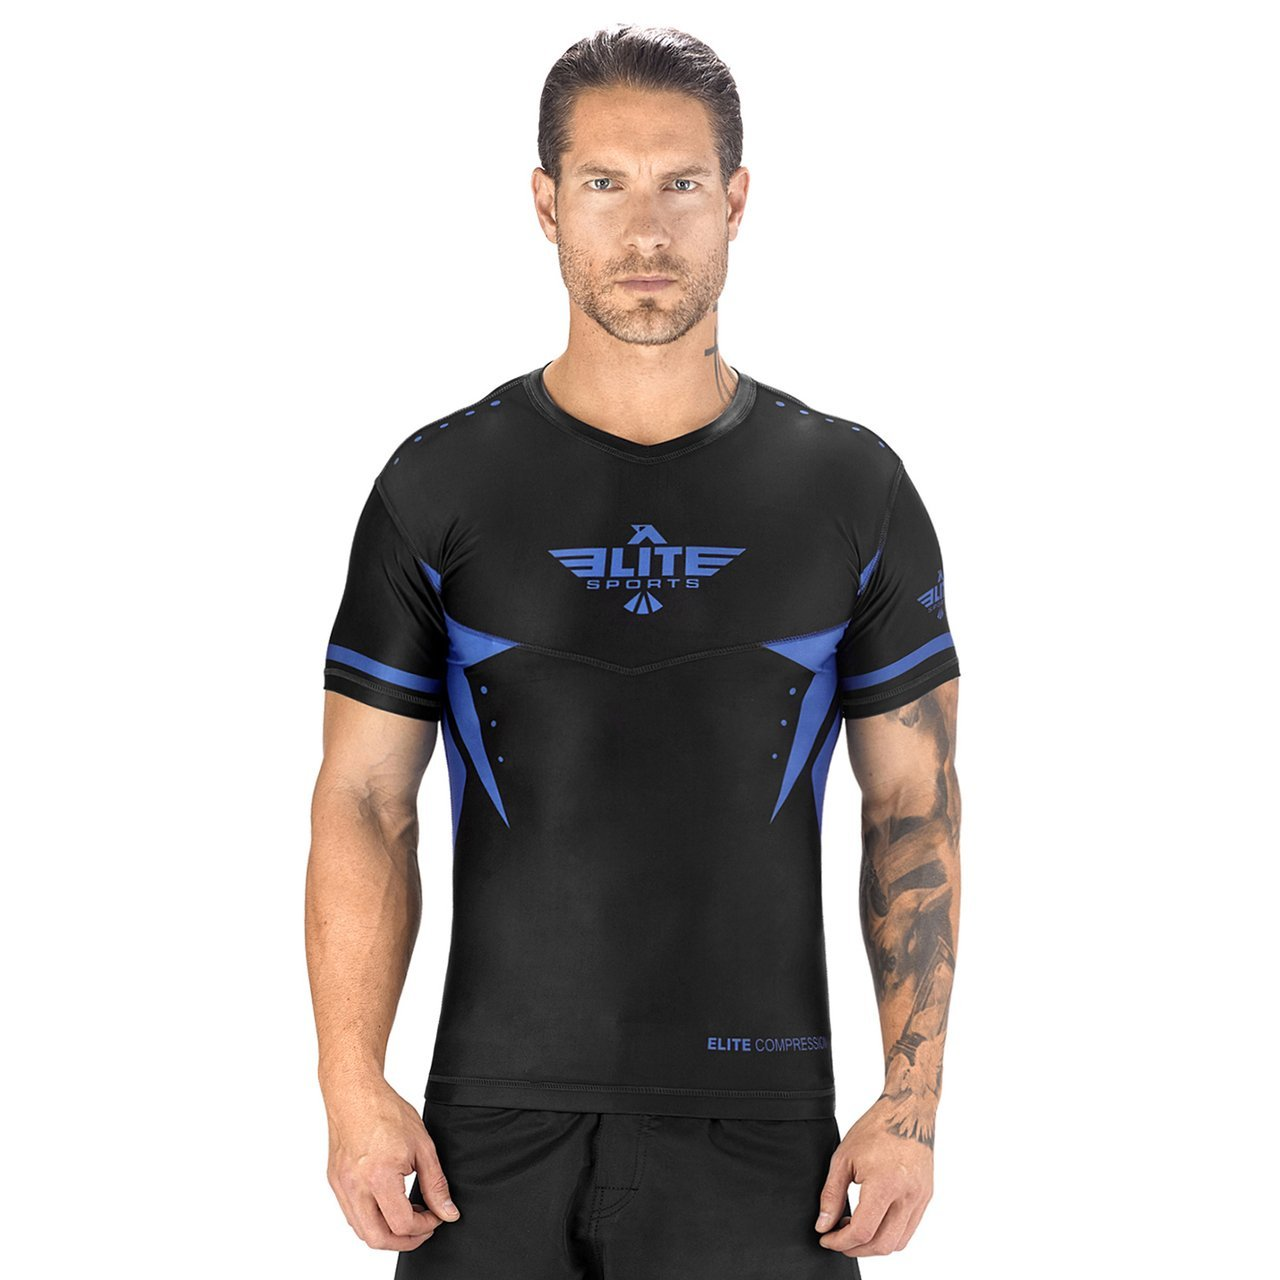 Elite Sports Star Series Sublimation Black/Blue Short Sleeve MMA Rash Guard